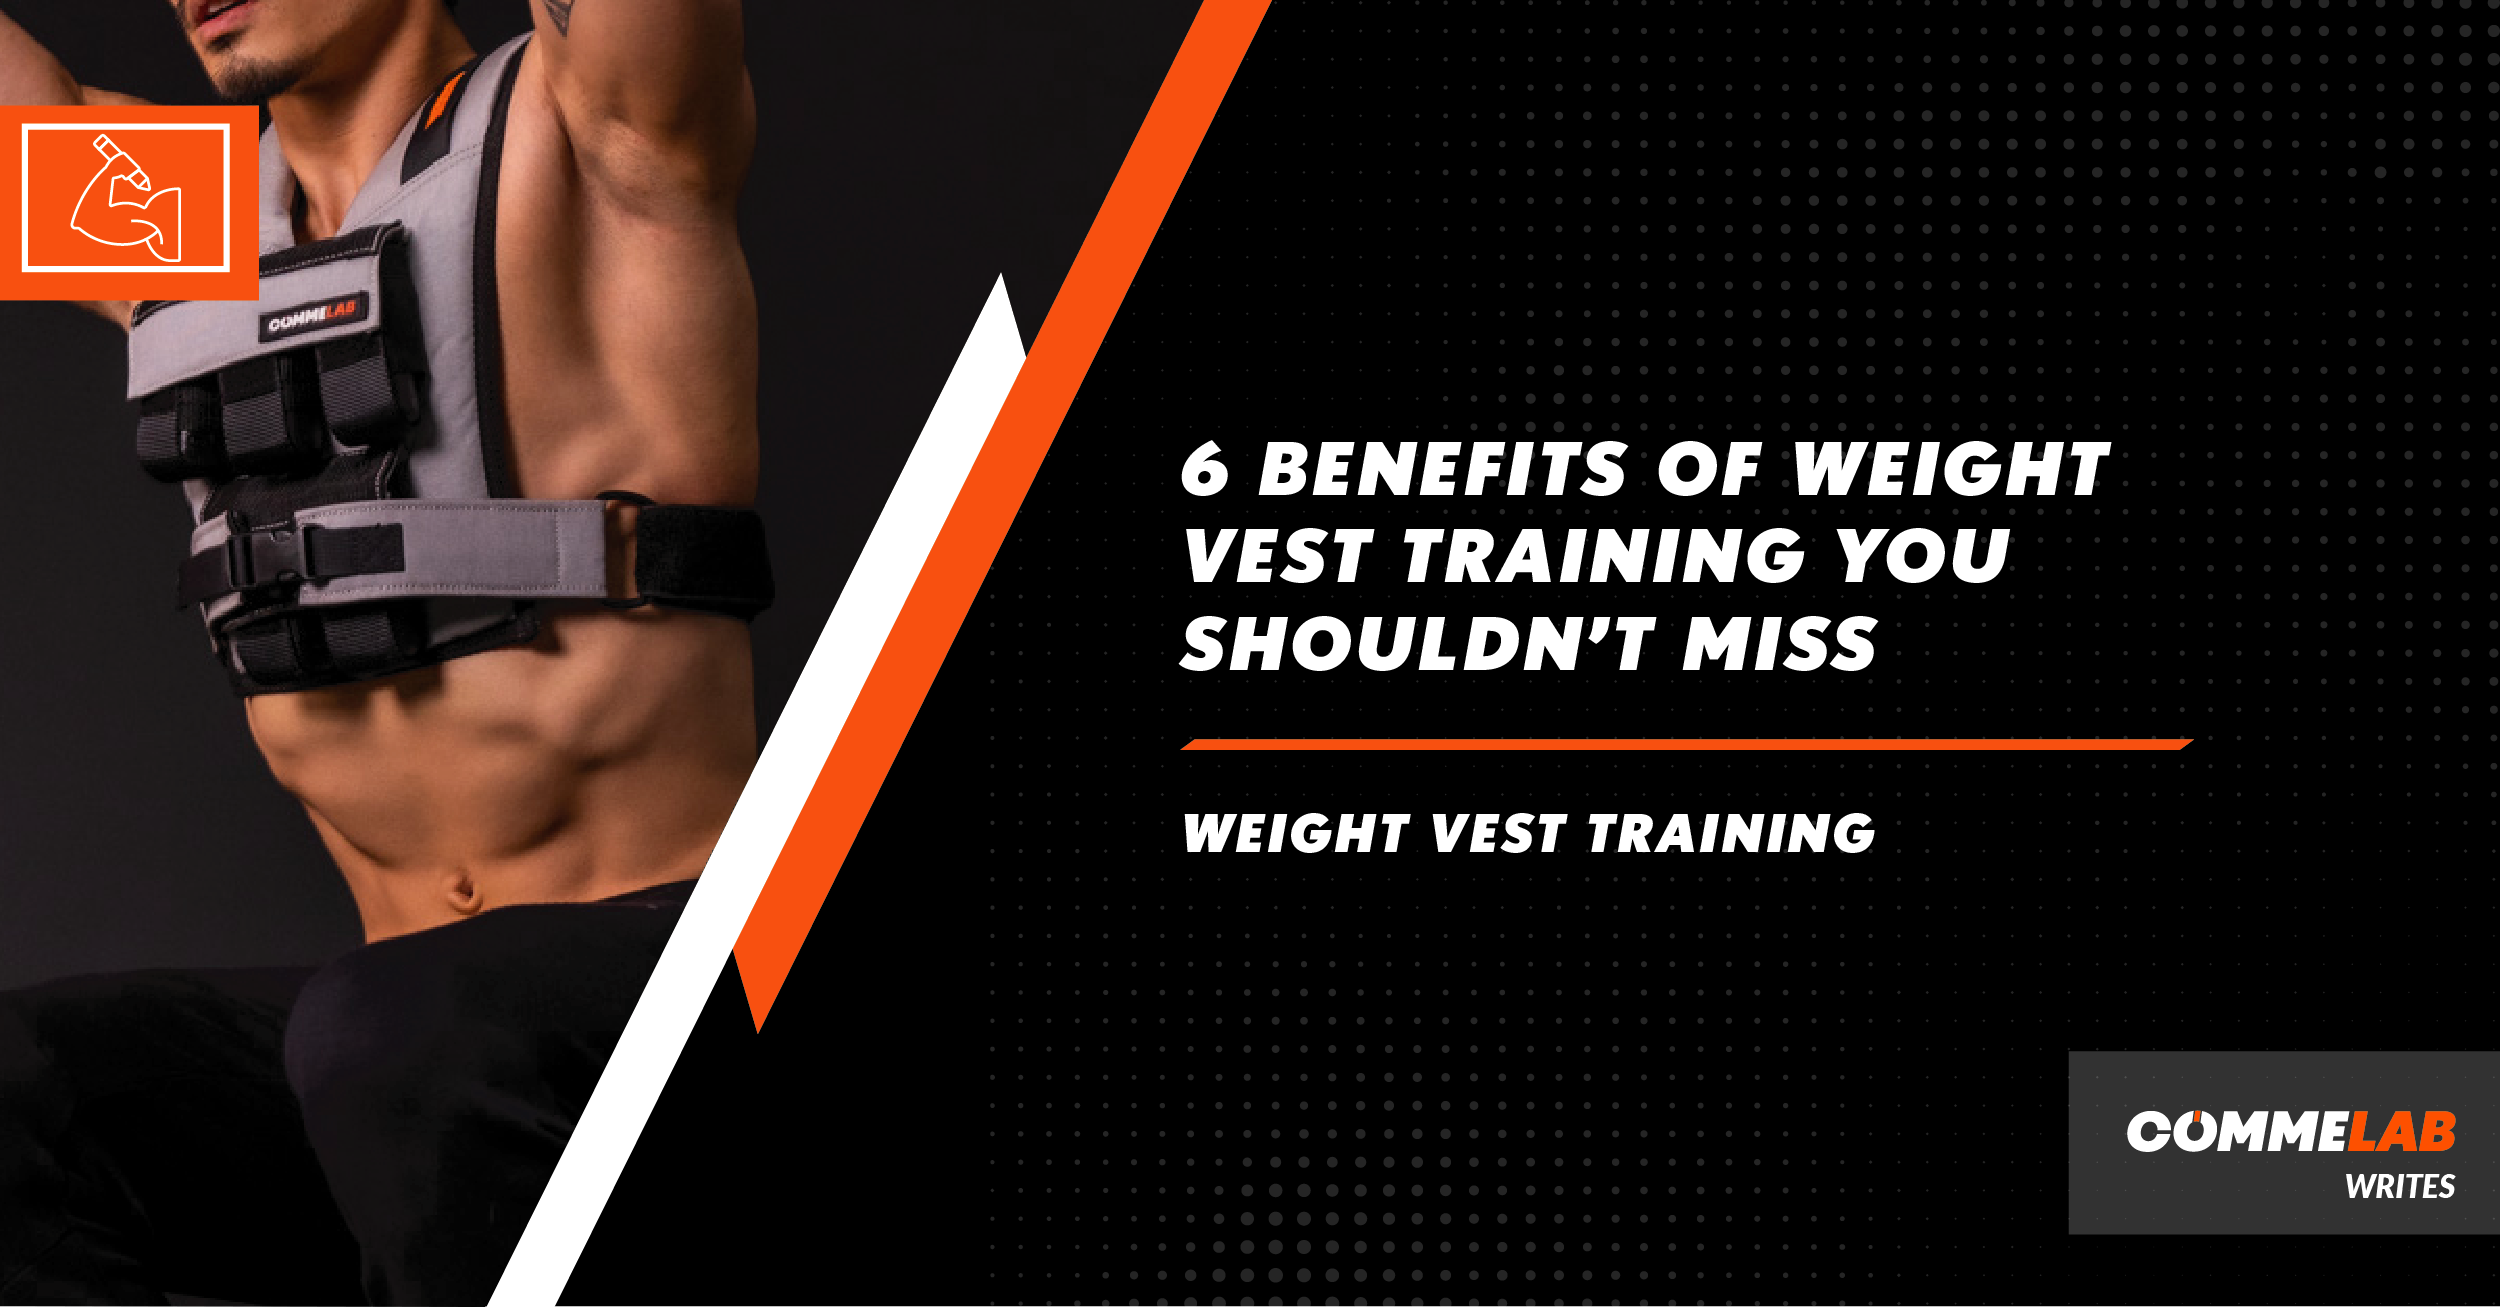 WEIGHT VEST TRAINING: 6 BENEFITS YOU'RE MISSING OUT ON by COMMELAB SINGAPORE